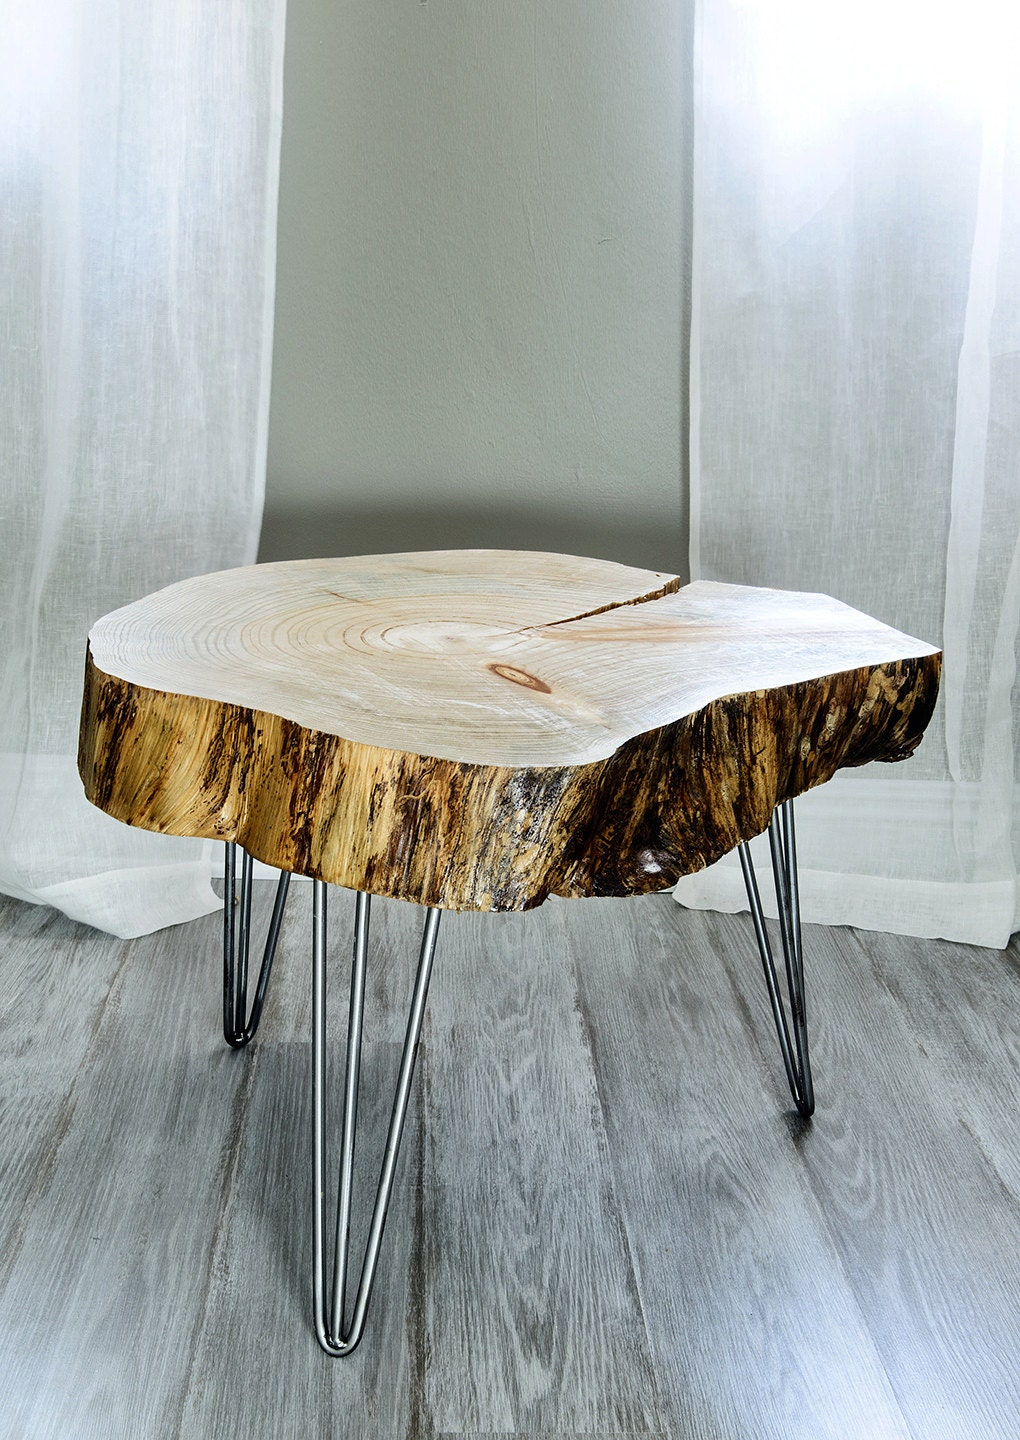 Live Edge Table Wood Slice Sidetable Modern End Table from